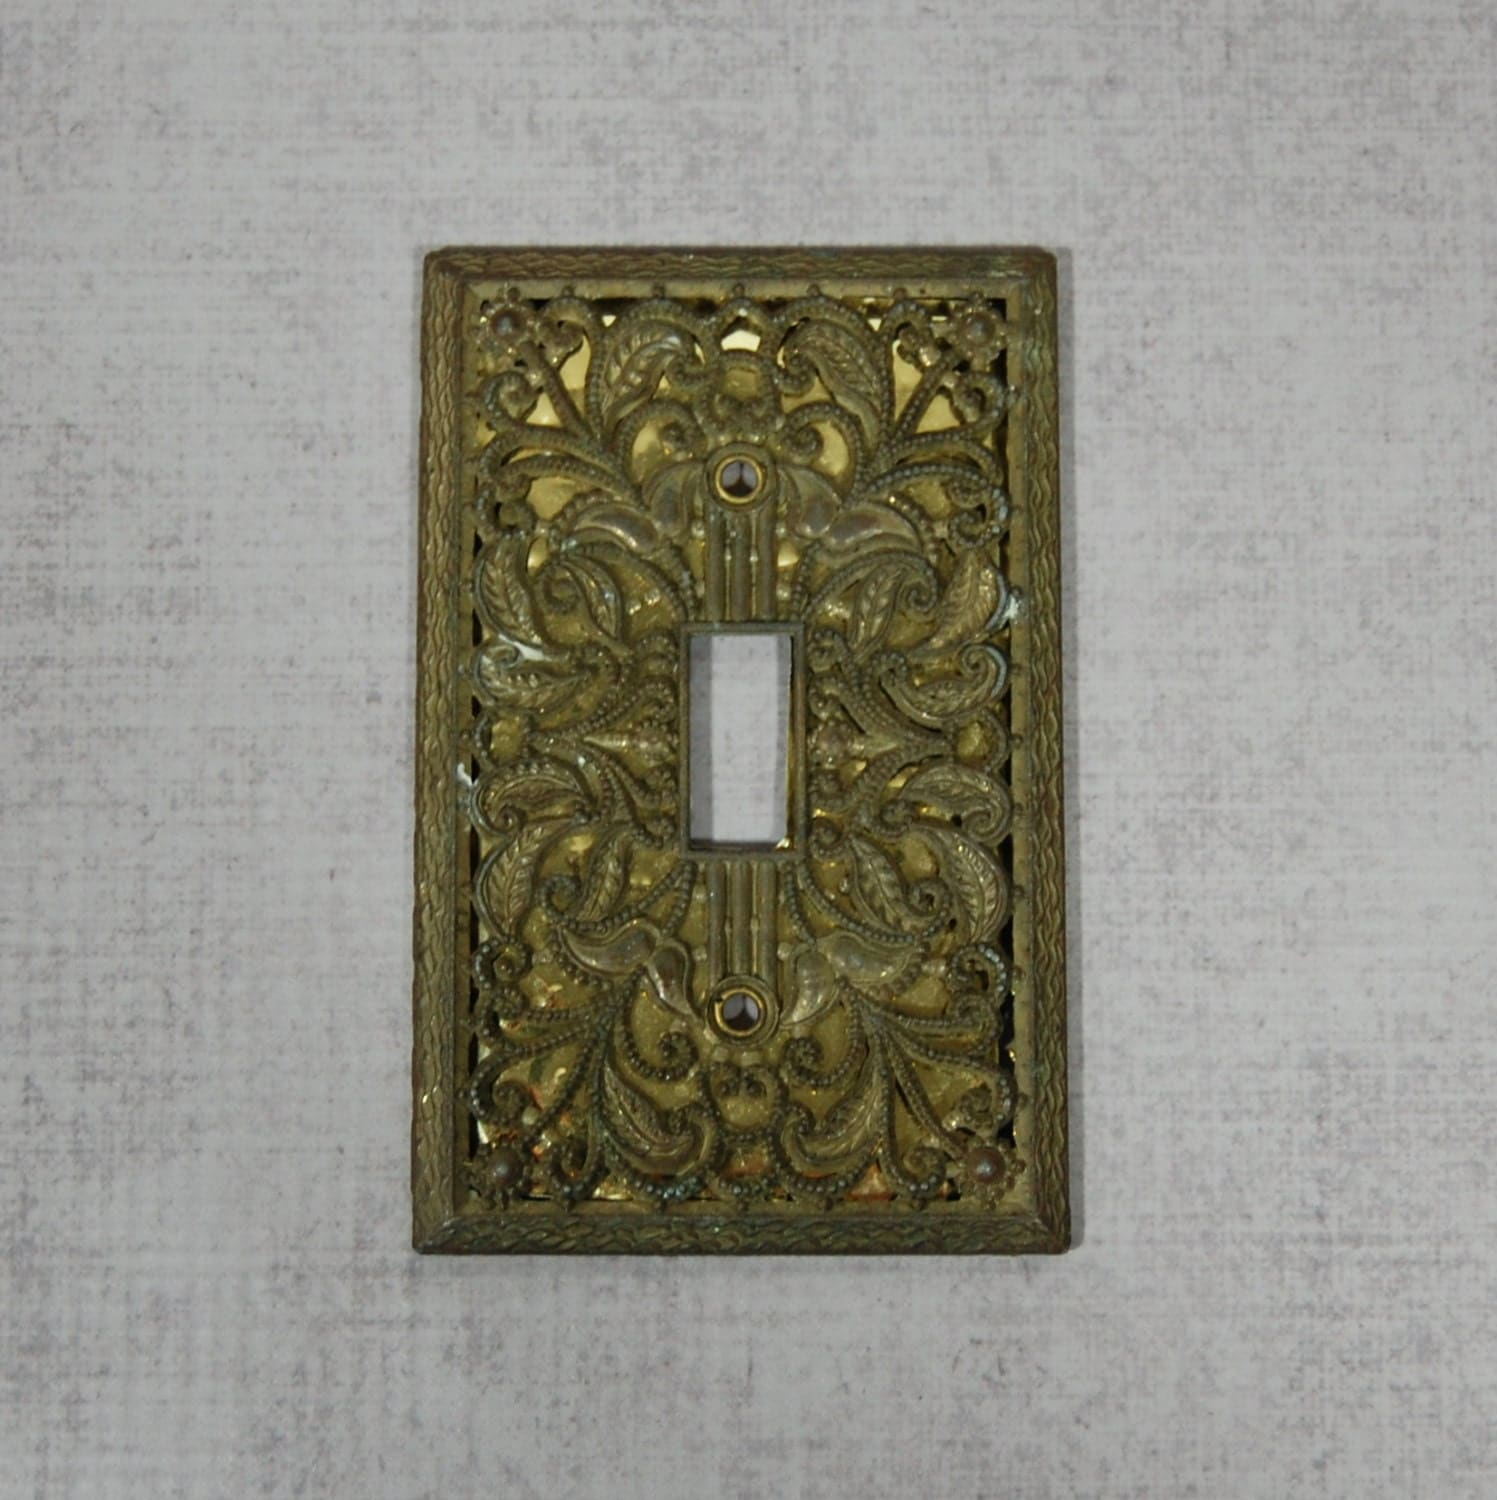 Decorative Light Plate Covers Decorative Light Switch Cover Plate Aged Brass Patina Cast